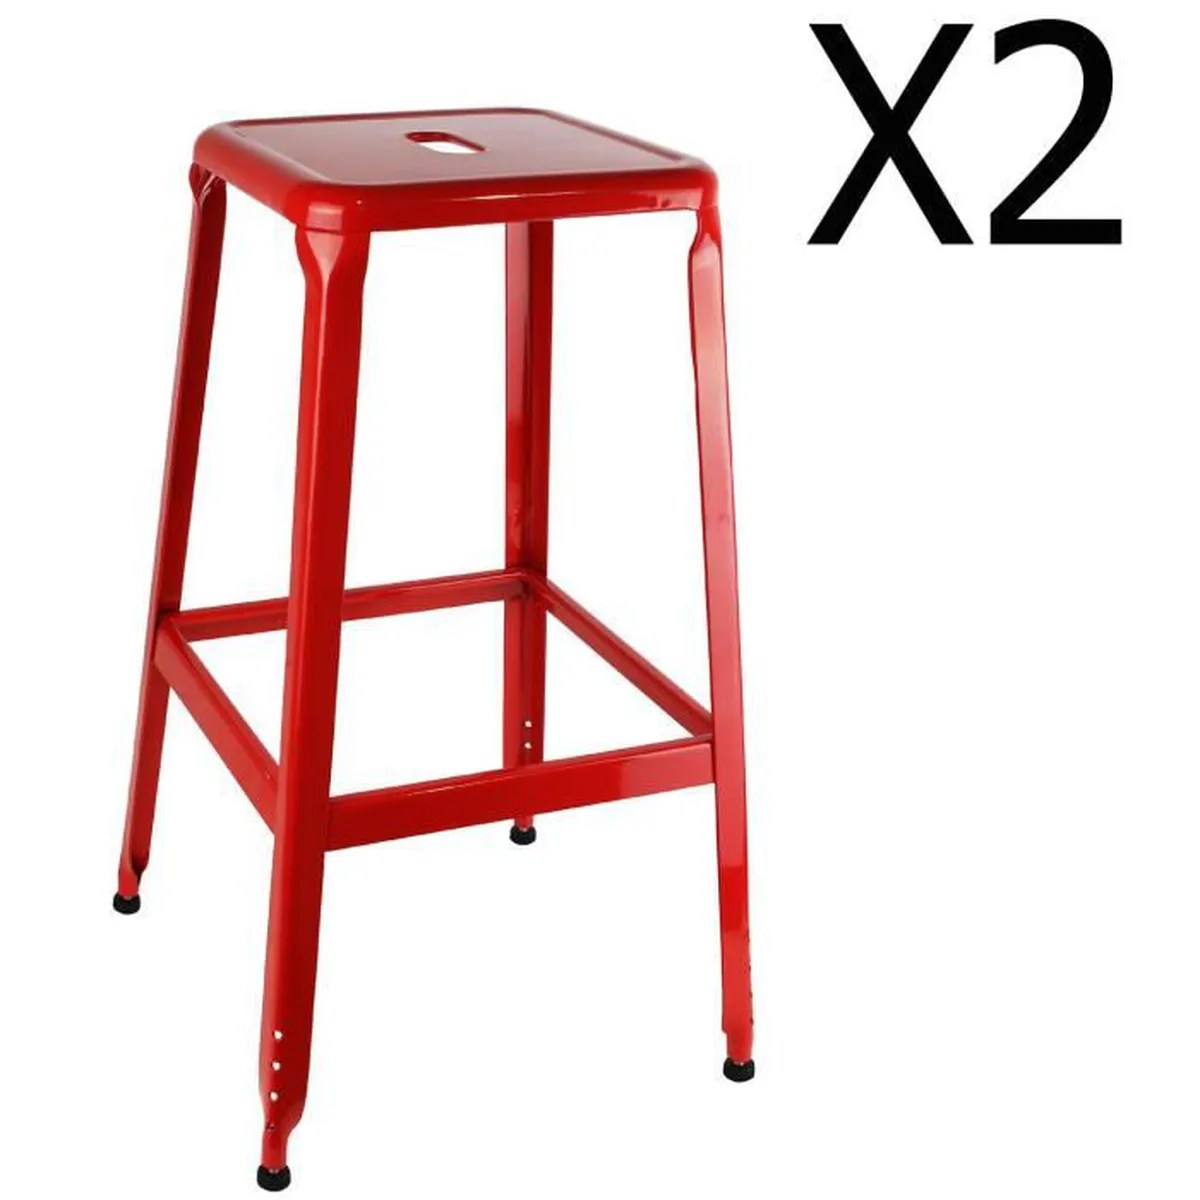 Tabourets De Bar En Metal Lot De 2 Tabouret De Bar Metal Rouge Achat Vente Lot